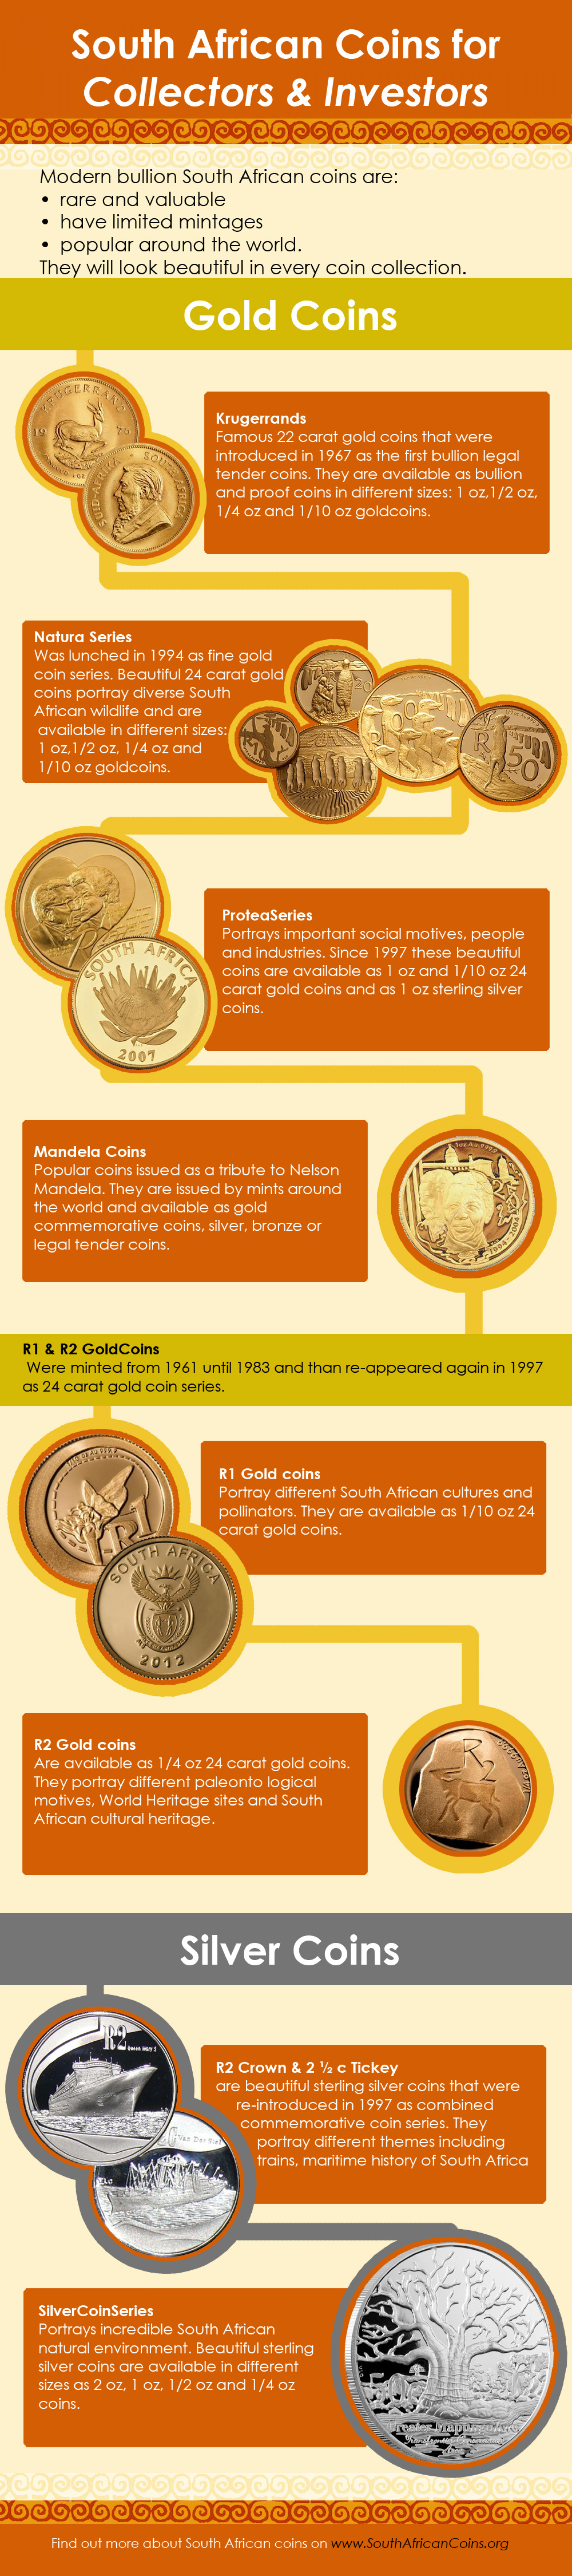 South African Coins Infographic